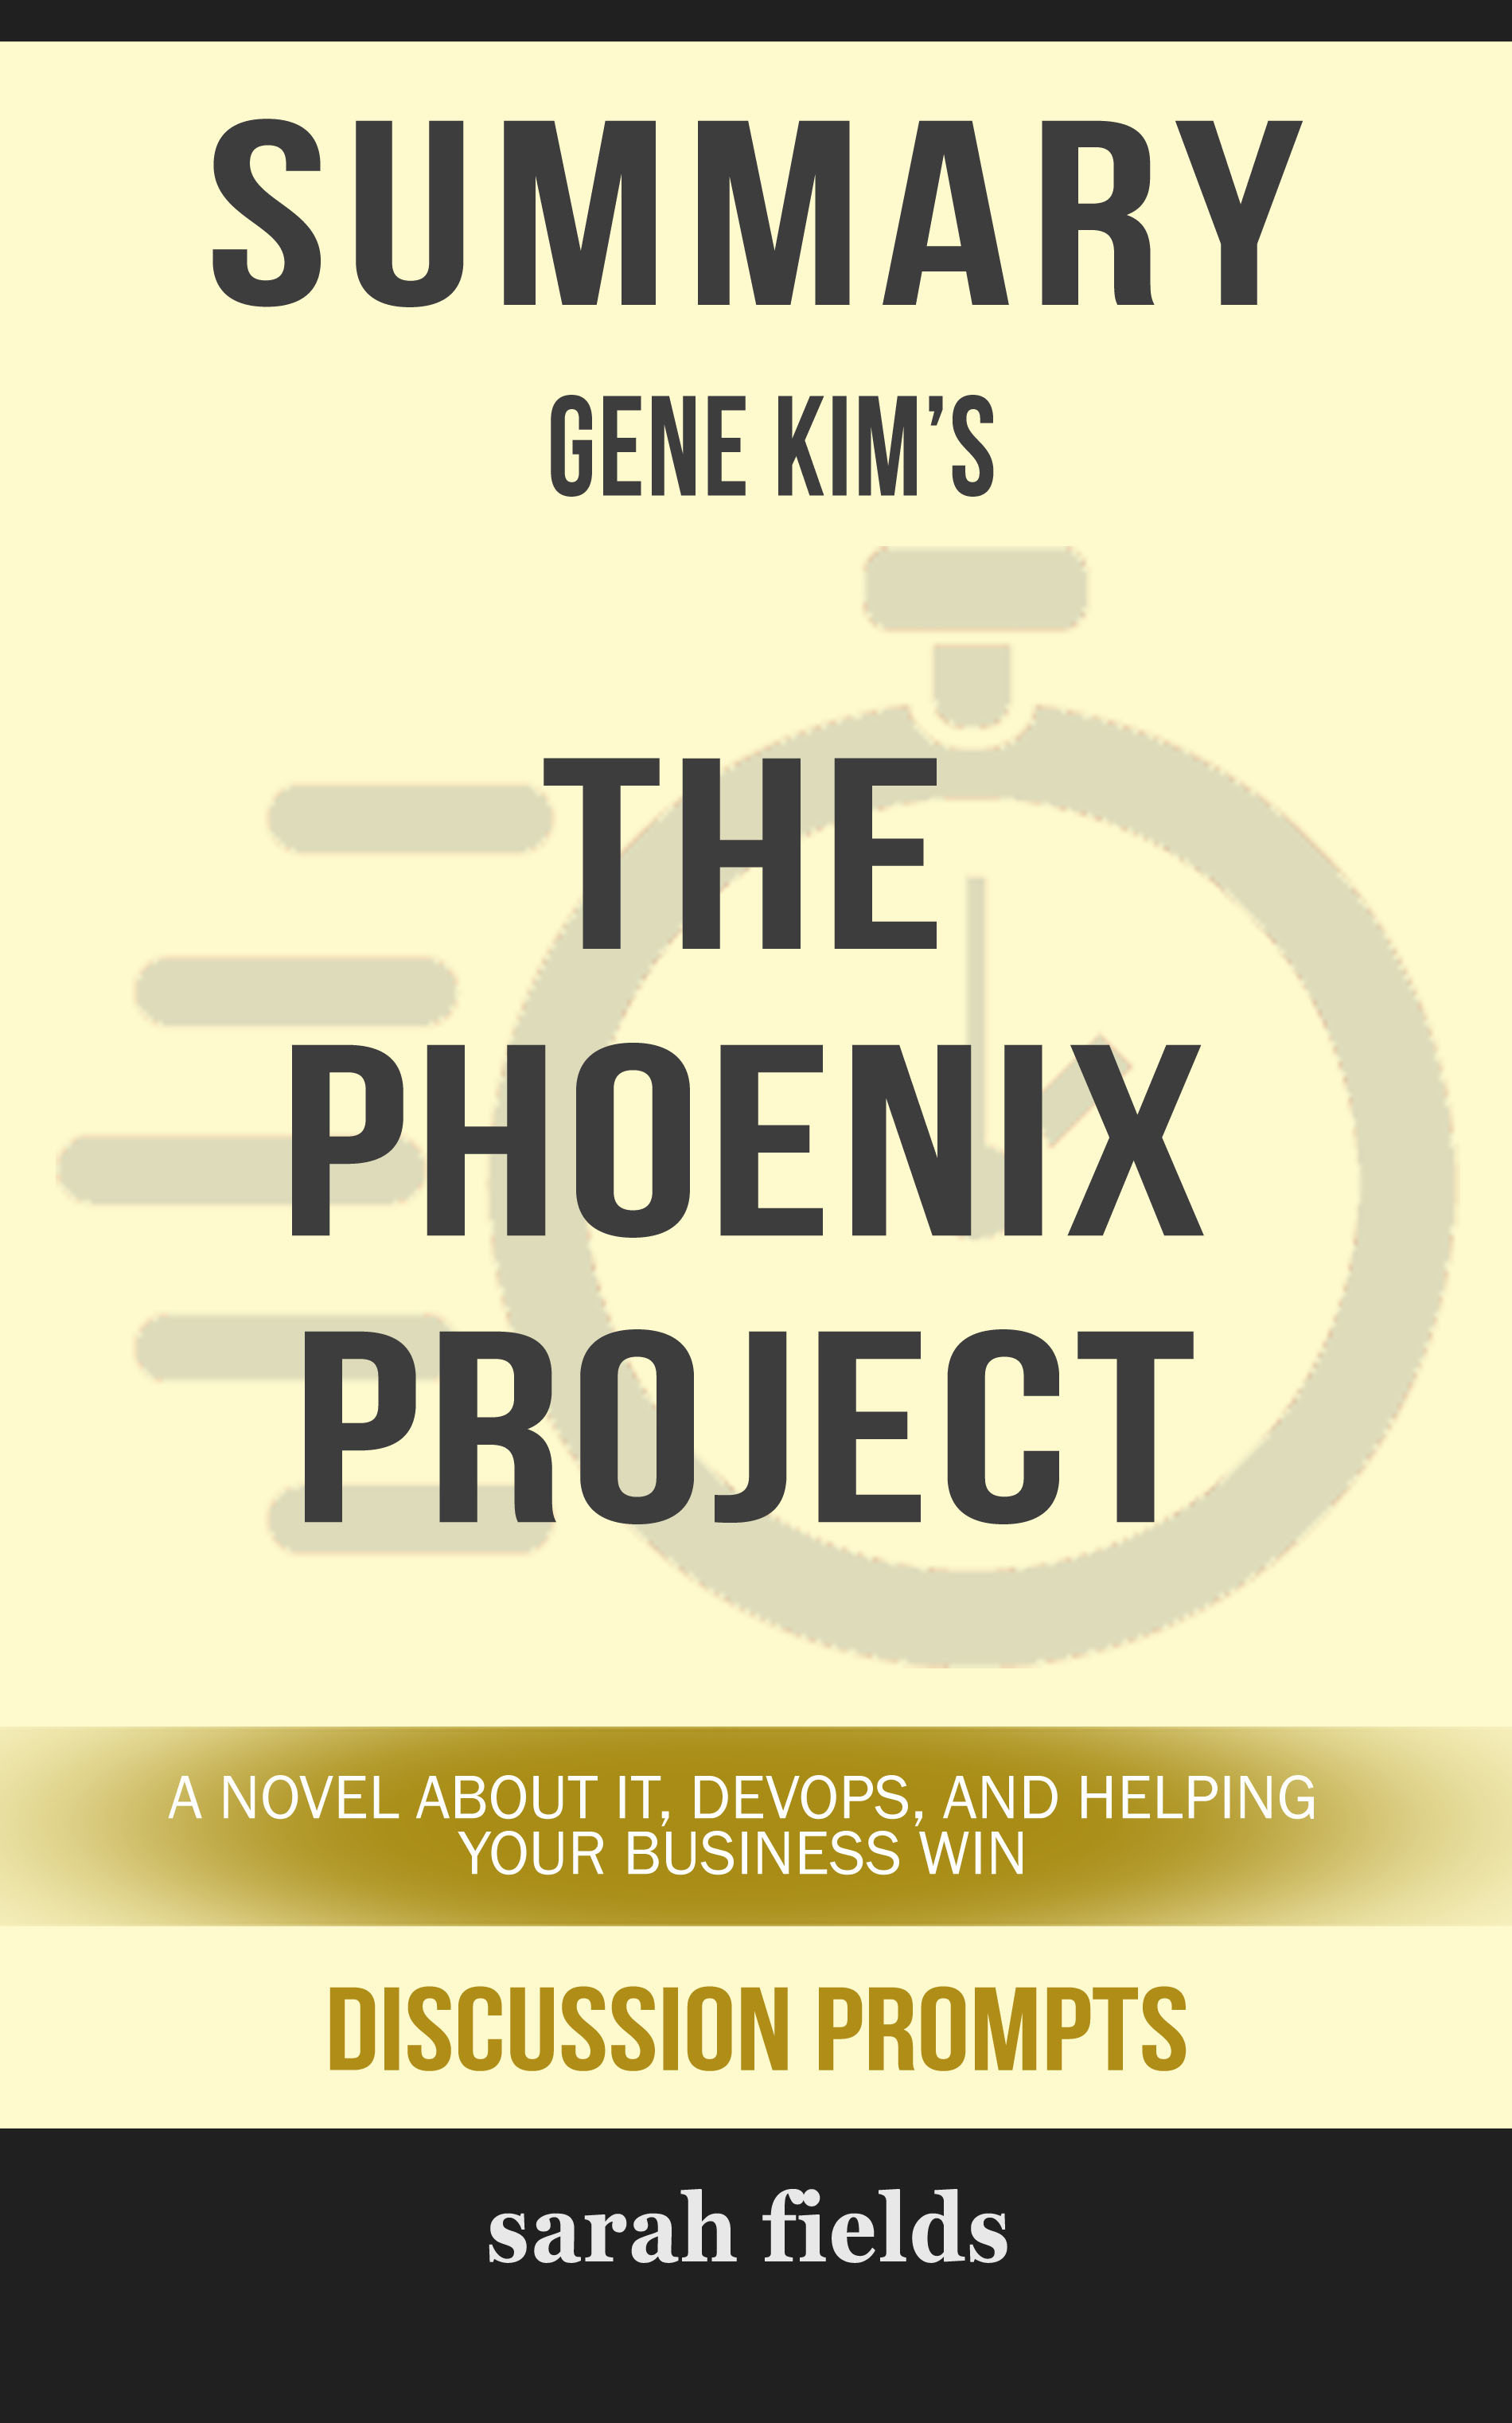 Summary of The Phoenix Project: A Novel about IT, DevOps, and Helping Your Business Win by Gene Kim